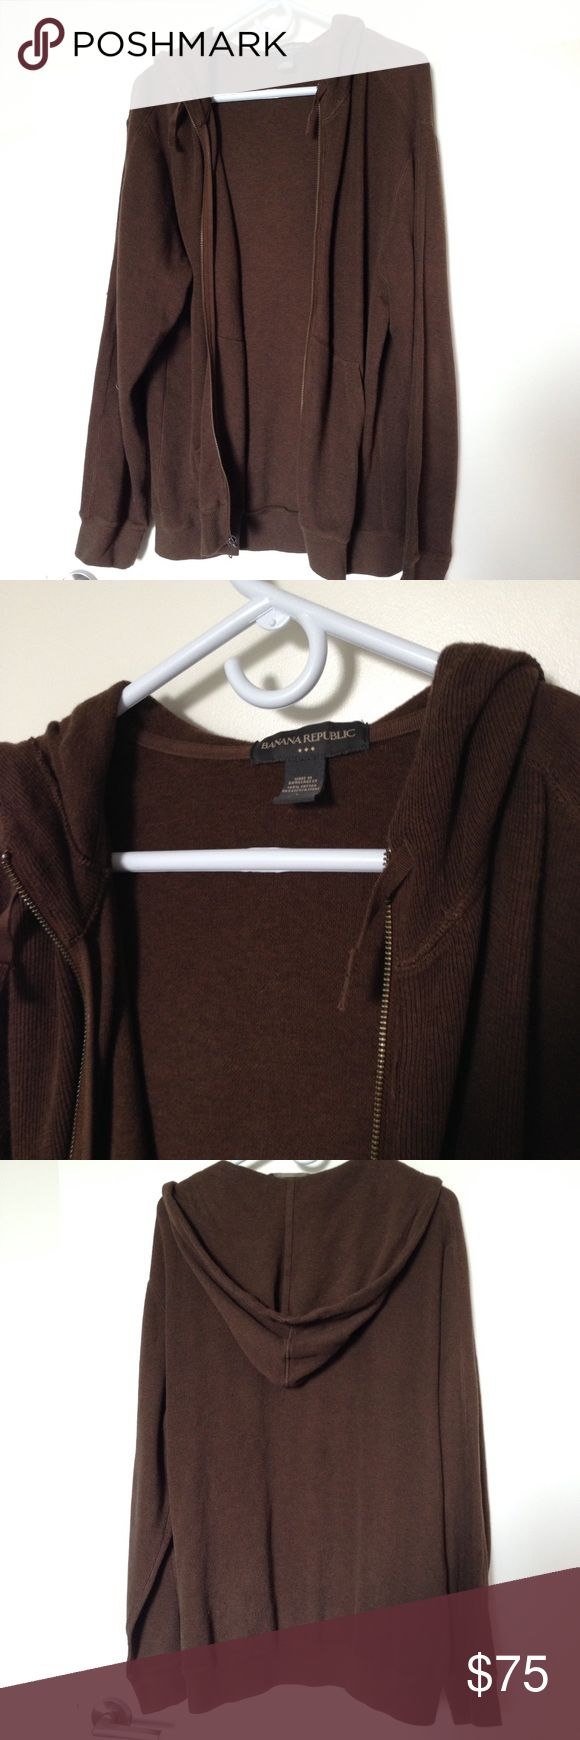 Brown Zip Up Hoodie! In perfect condition - hardly worn! Nice ribbed pattern and has the original string included. 100% cotton! Banana Republic Sweaters Zip Up